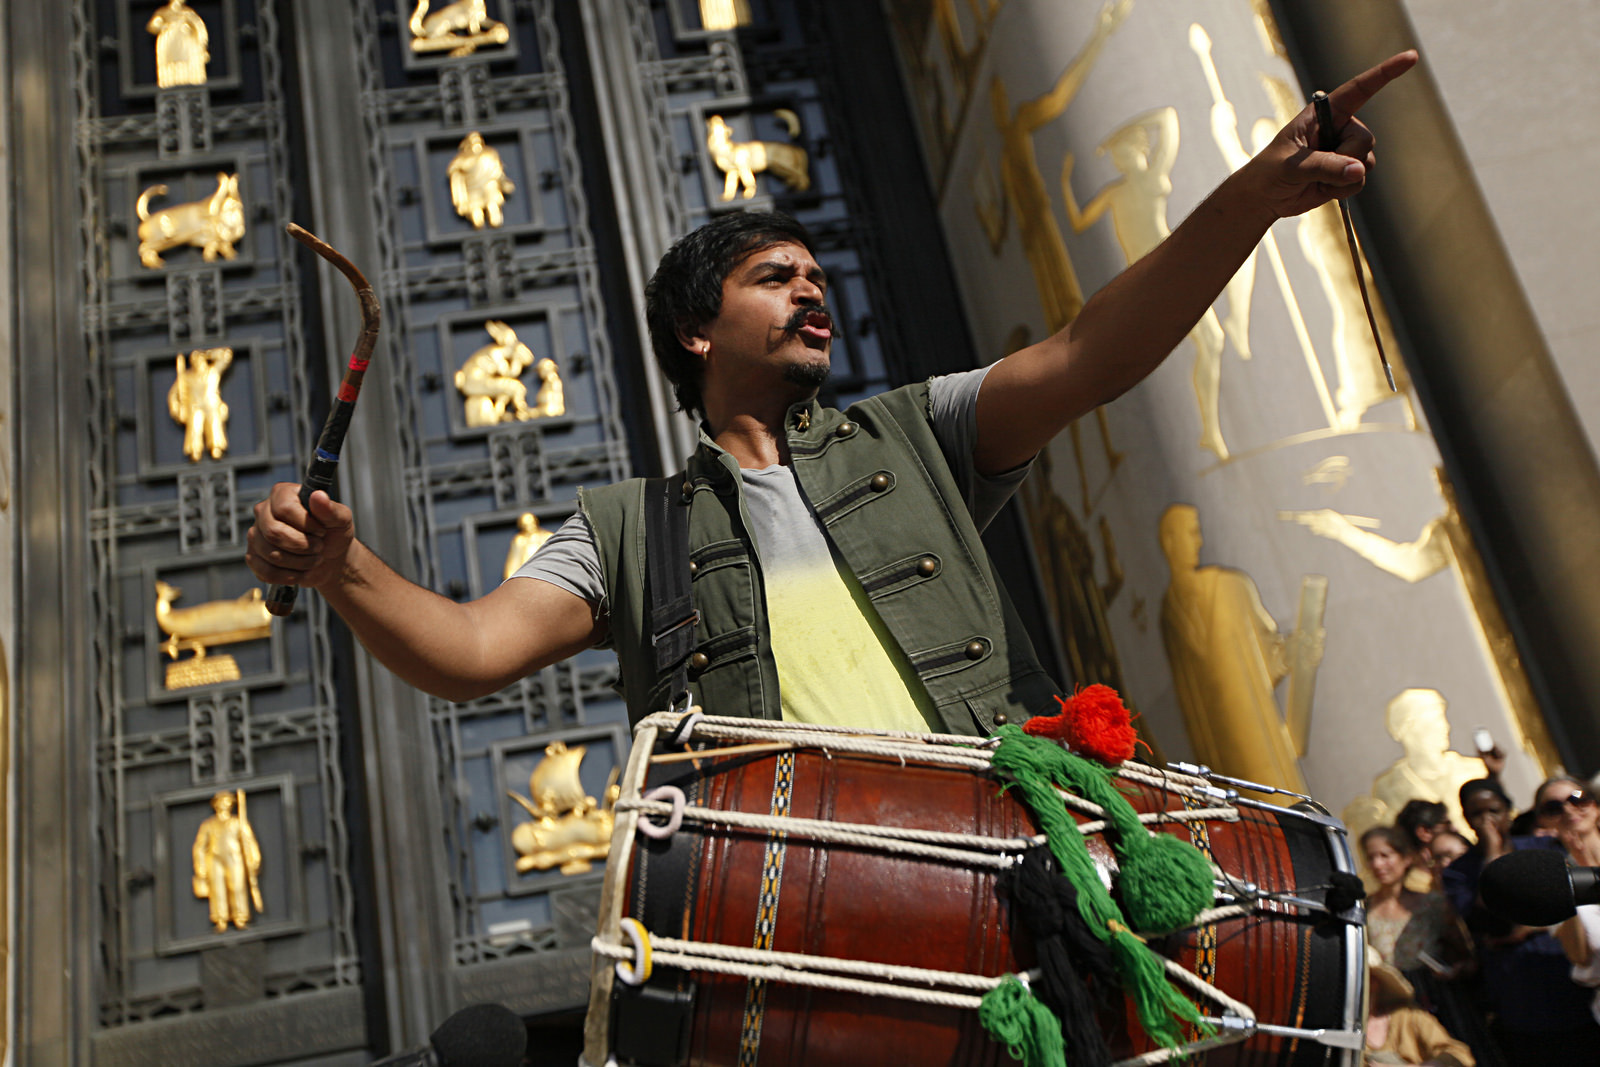 Dhol drummer and composer Sunny Jain wrote 100+ BPM for this occasion, bringing in the signature sounds that fuel his band Red Baraat -- a riotous mix of Punjabi bhangra, funk and jazz.